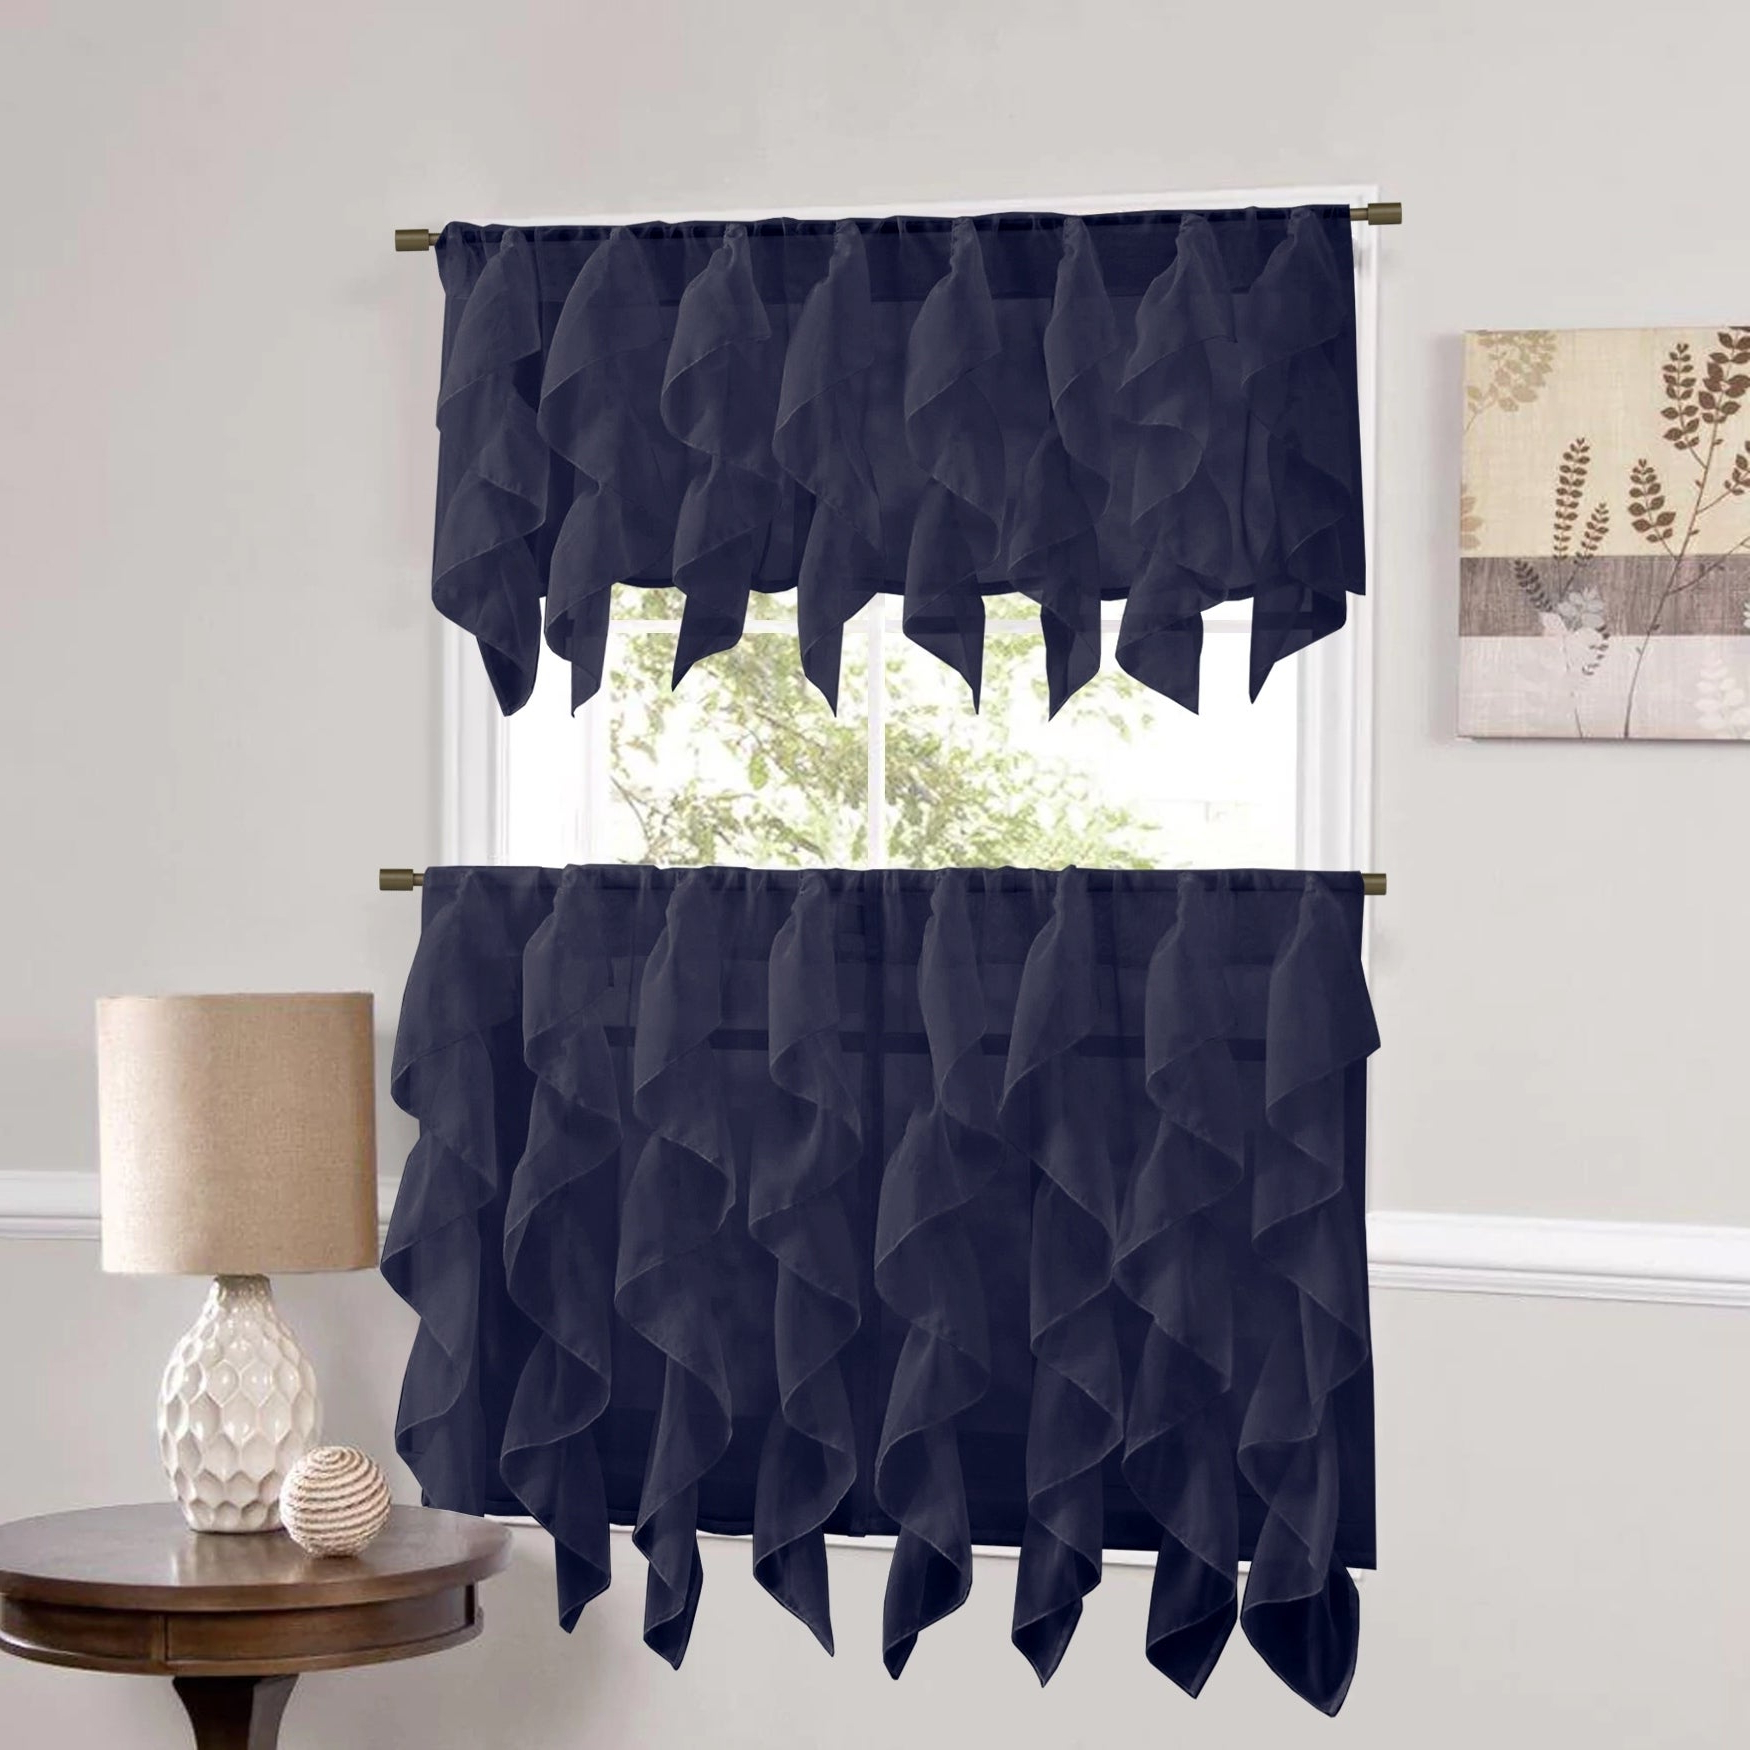 Sweet Home Collection Navy Vertical Ruffled Waterfall Valance And Curtain Tiers Regarding Favorite Vertical Ruffled Waterfall Valances And Curtain Tiers (View 3 of 20)